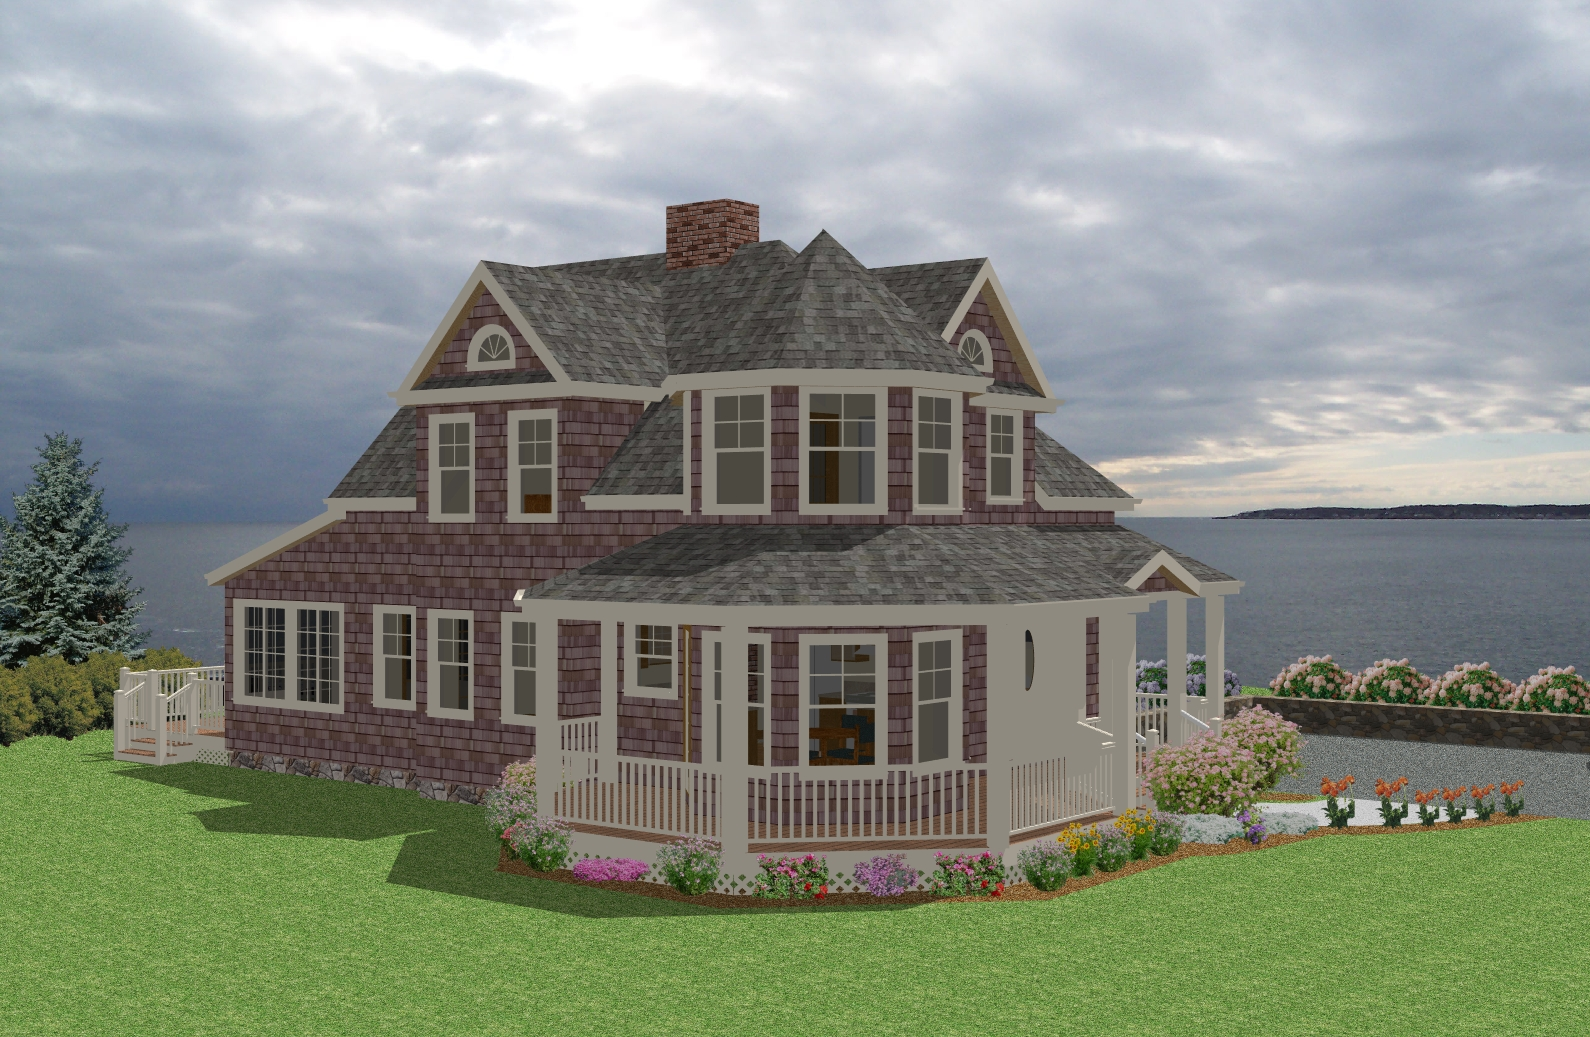 quaint beautiful house plans html with 32f1aa4715b4a5a5 Antique New England Farmhouses New England Cottage House Plans on D3bc6bdf74cf563f English Country Cottage House Cottage Chic Living Rooms further LocationPhotoDirectLink G54105 D267888 I21065651 Green Animals Topiary Gardens Portsmouth Rhode Island in addition Small House With Fence 6467478 furthermore C19cedd3e74af75e Fairy Tale Cottage House Plans English Cottage House Plans moreover American Bungalows.